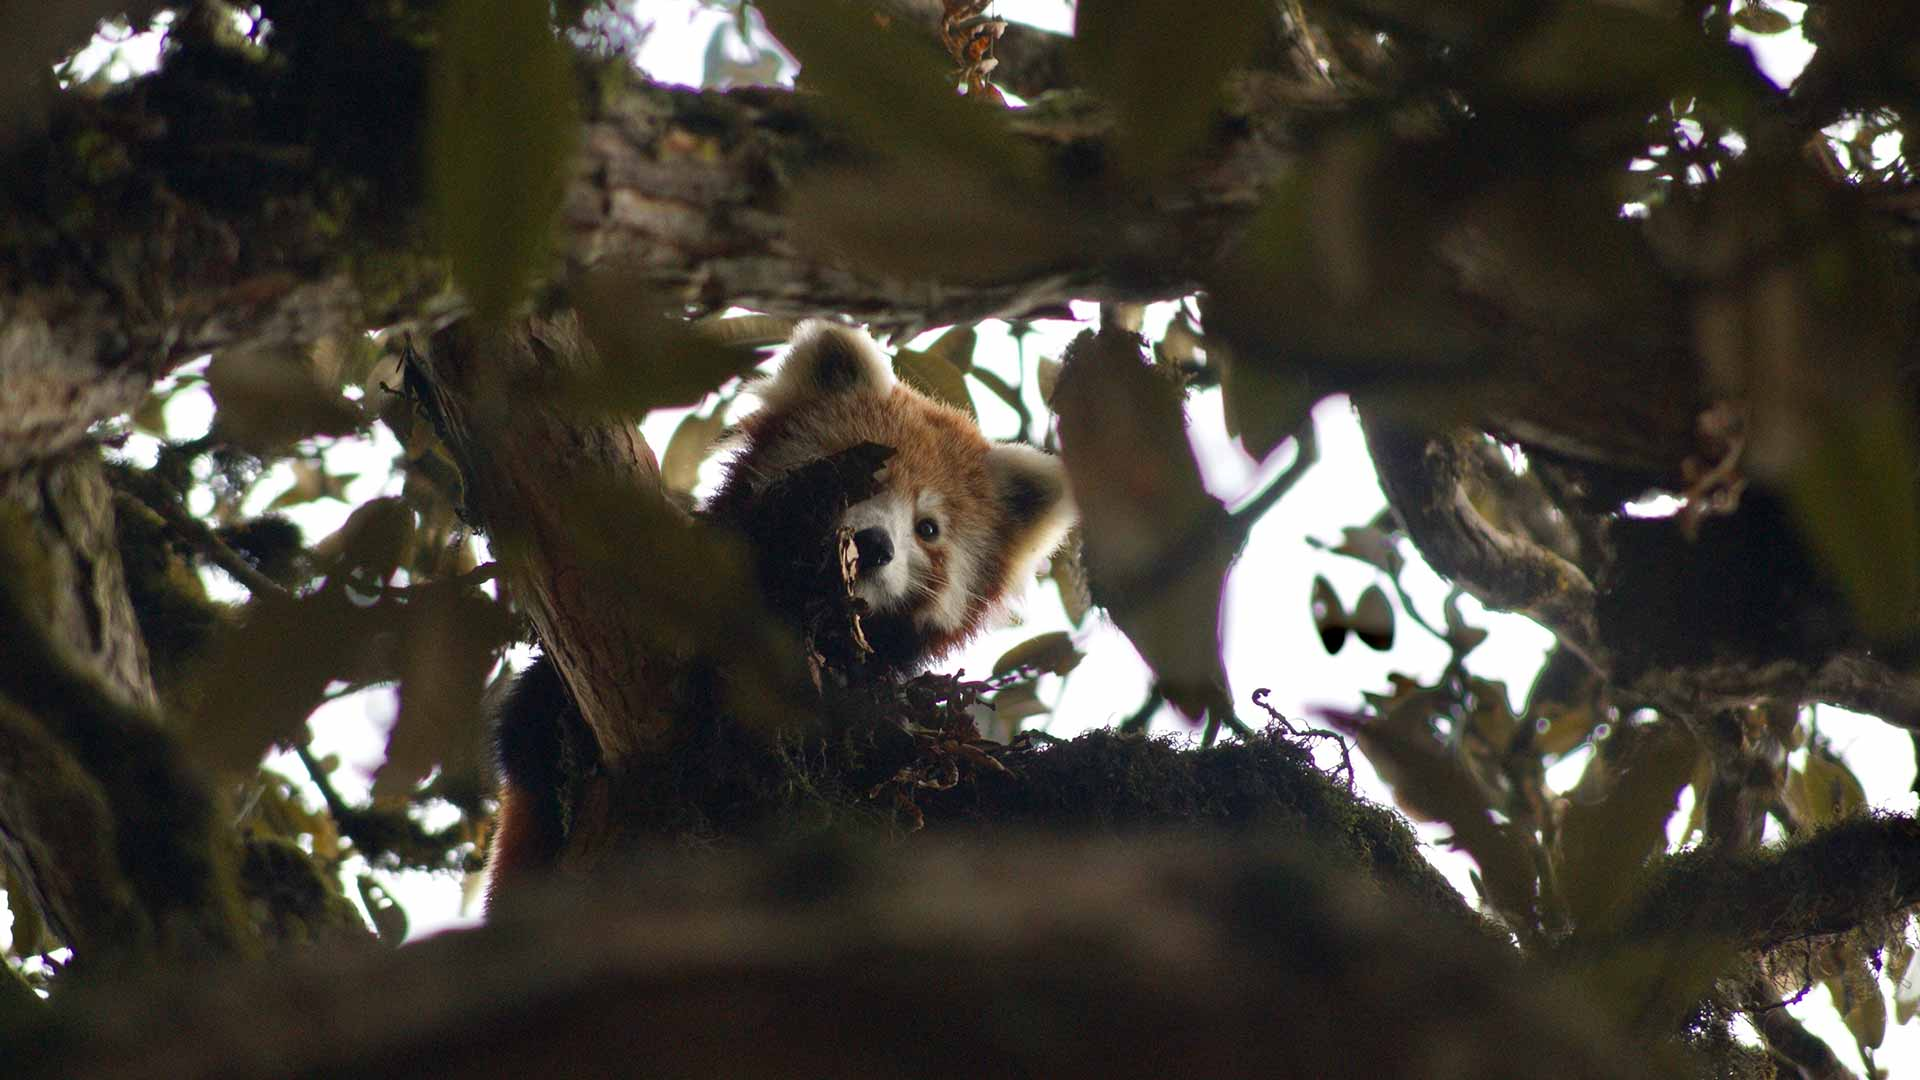 https://rfacdn.nz/zoo/assets/media/red-panda-nepal-gallery-2.jpg